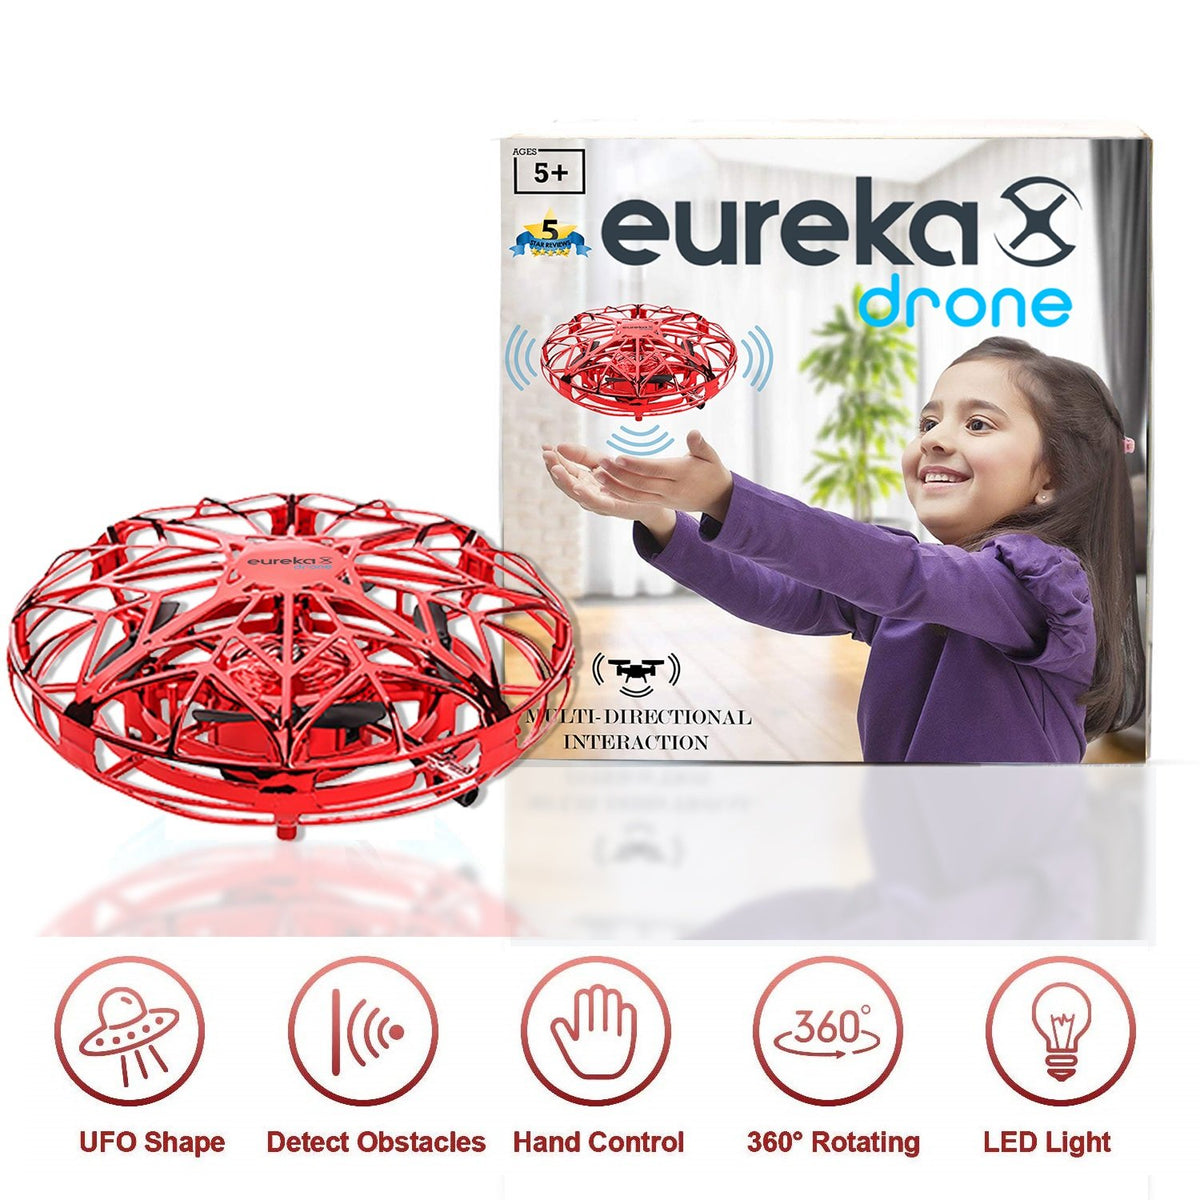 eureka drone mini drone red